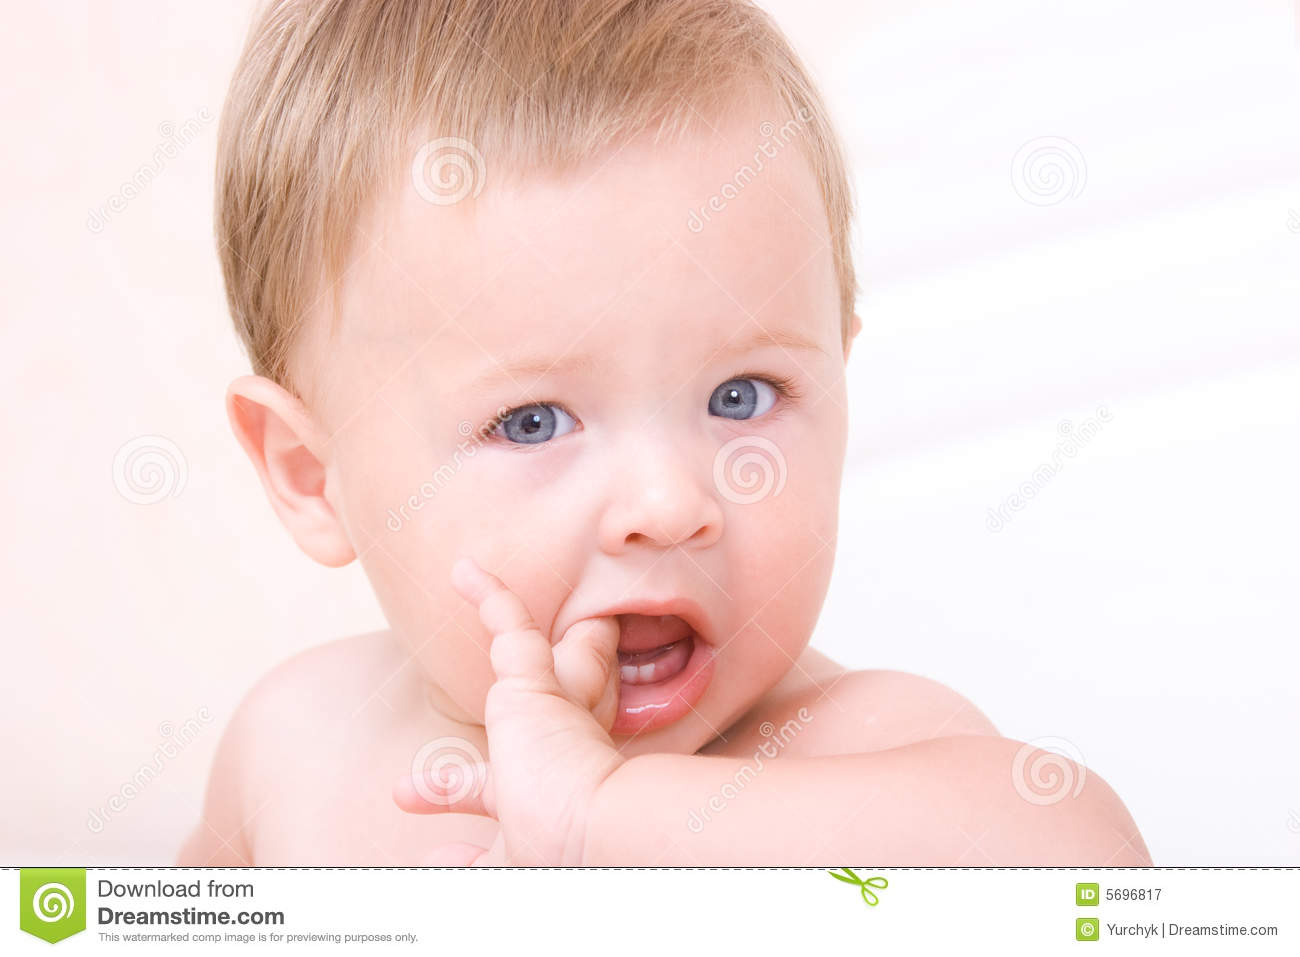 how to know when baby will cut tooth